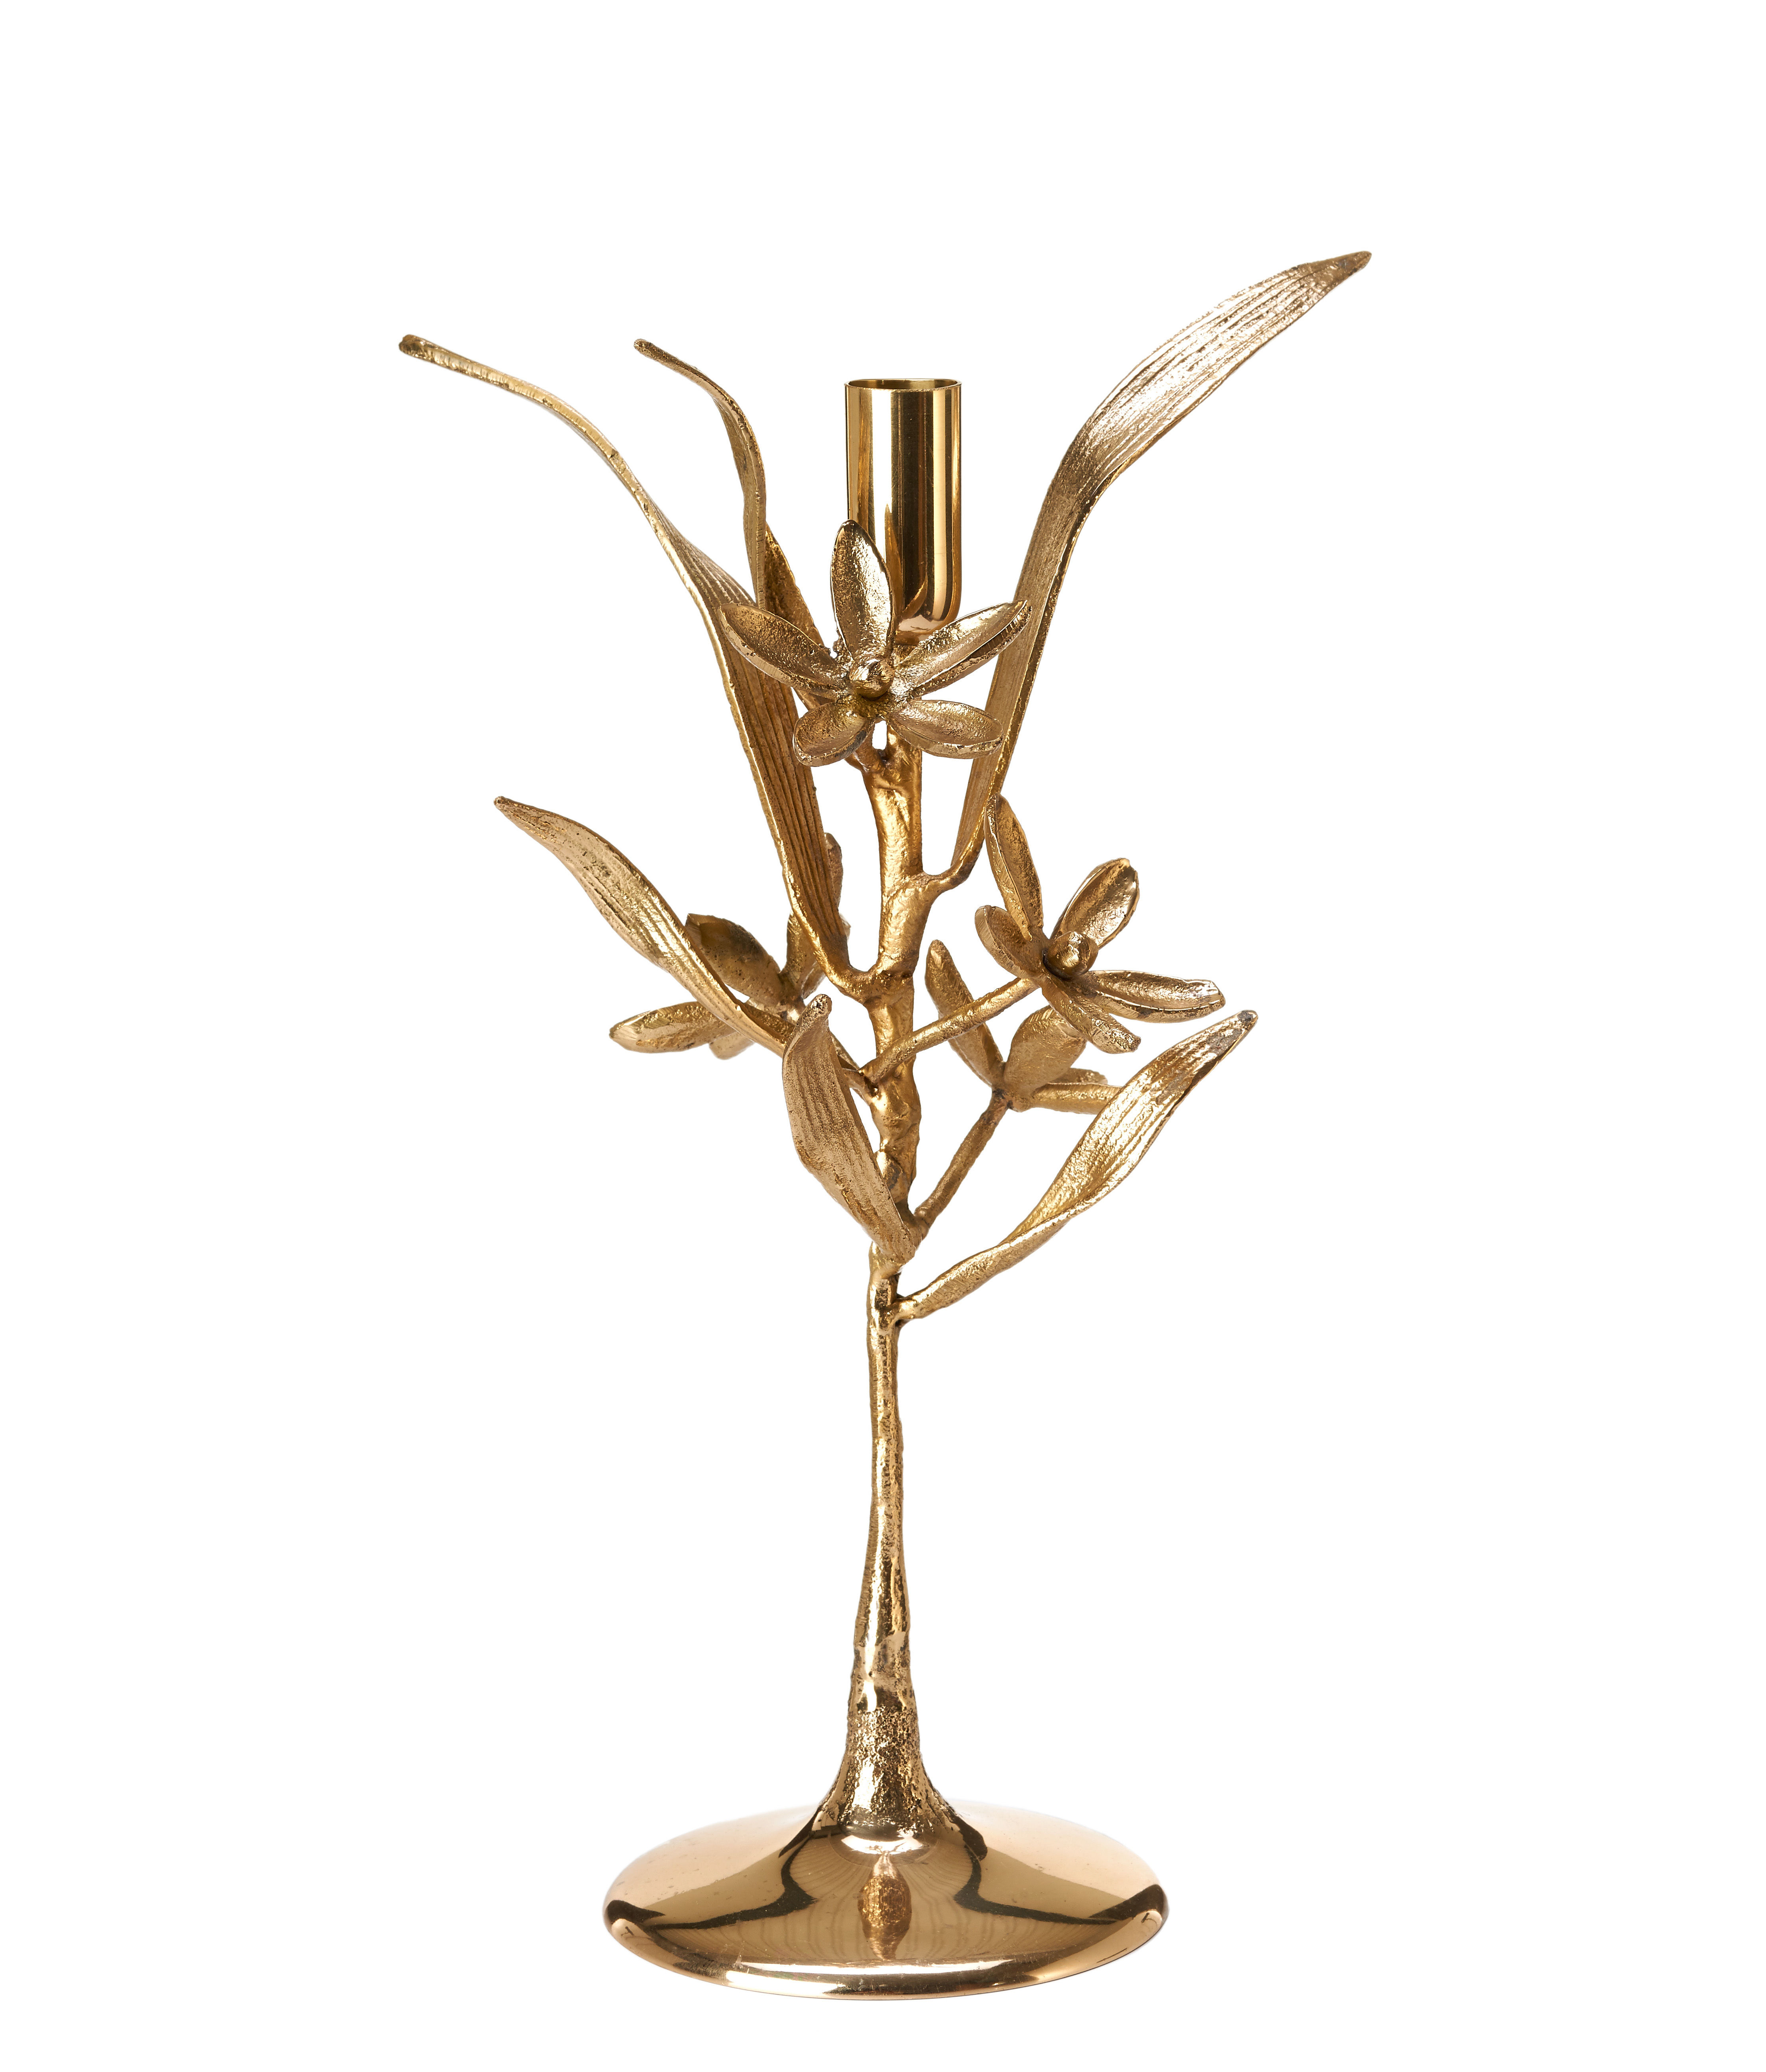 Decoration - Candles & Candle Holders - Bergamote Candle stick - / Brass by Pols Potten - Bergamot / Gold - Brass